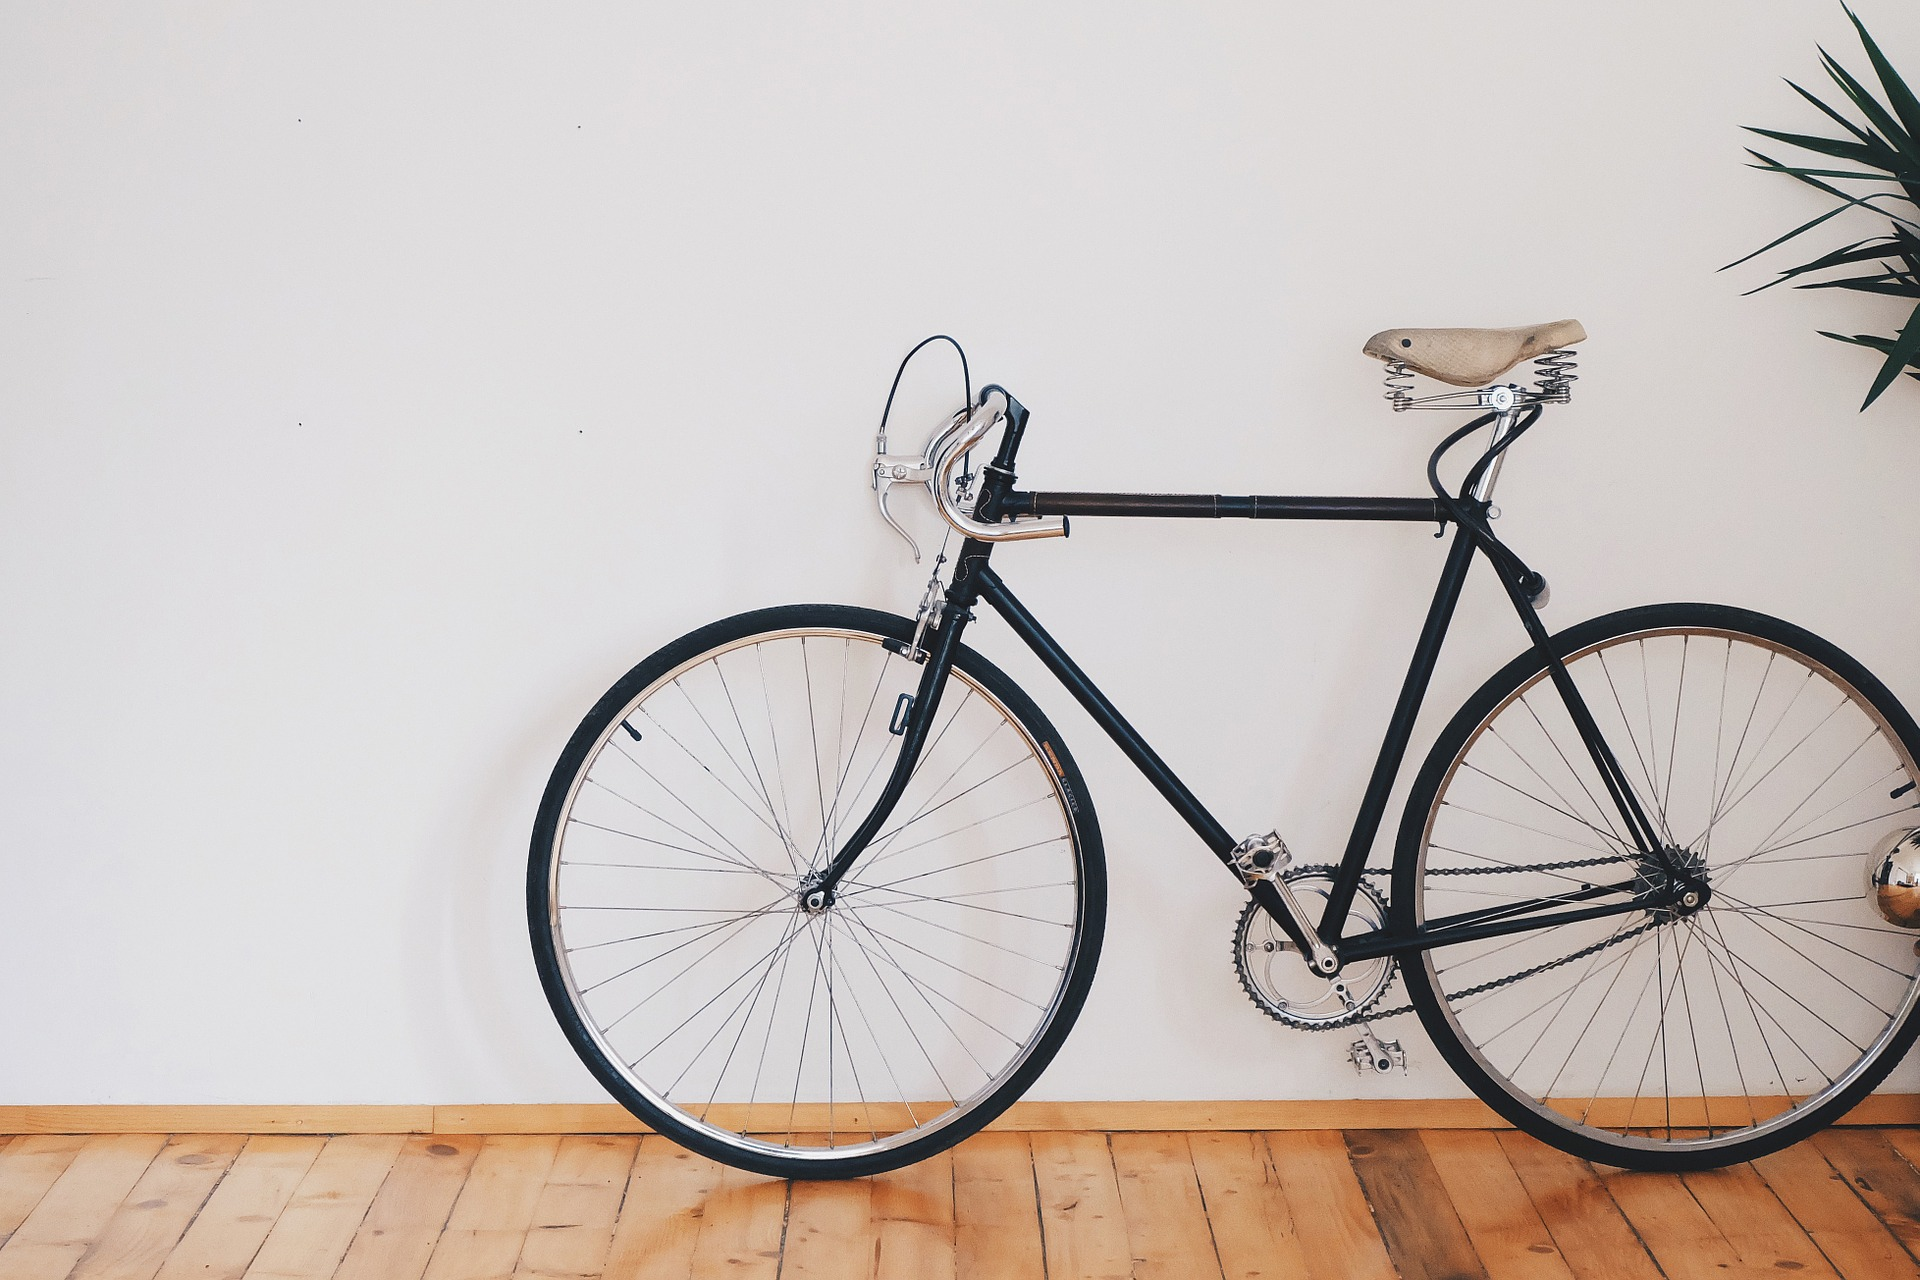 Store your bike on a vertical bike rack instead of keeping it around the apartment.